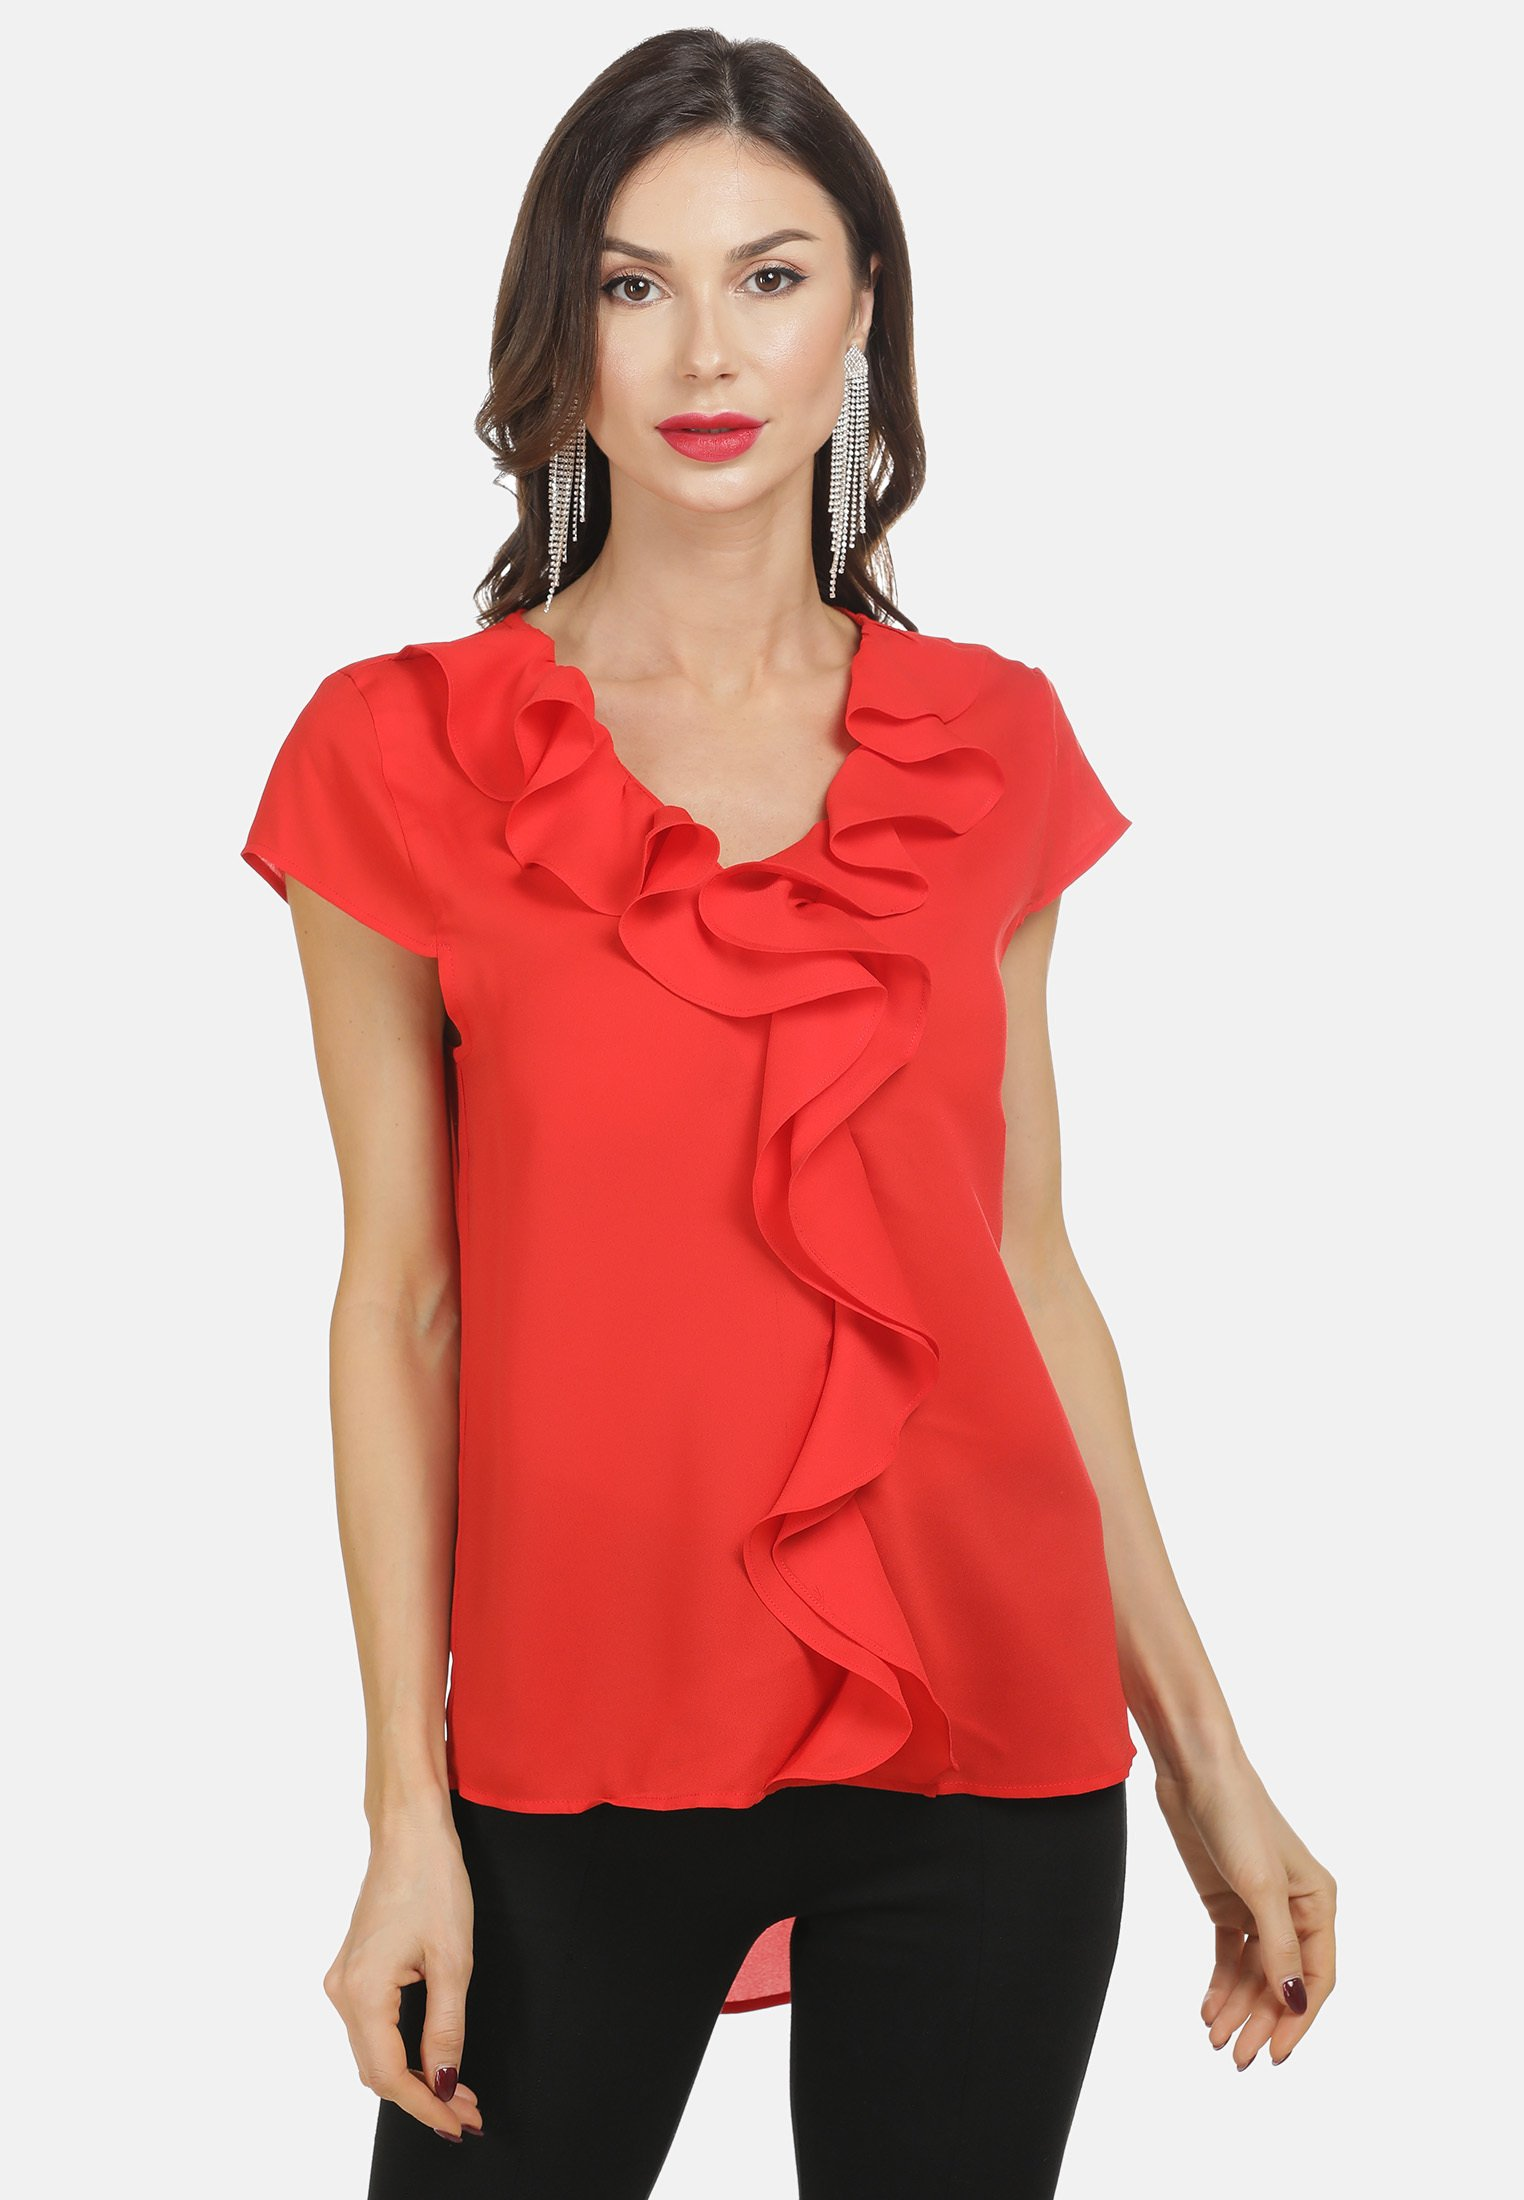 Low Cost Women's Clothing faina BLUSE Blouse rot CGW6QTpFo